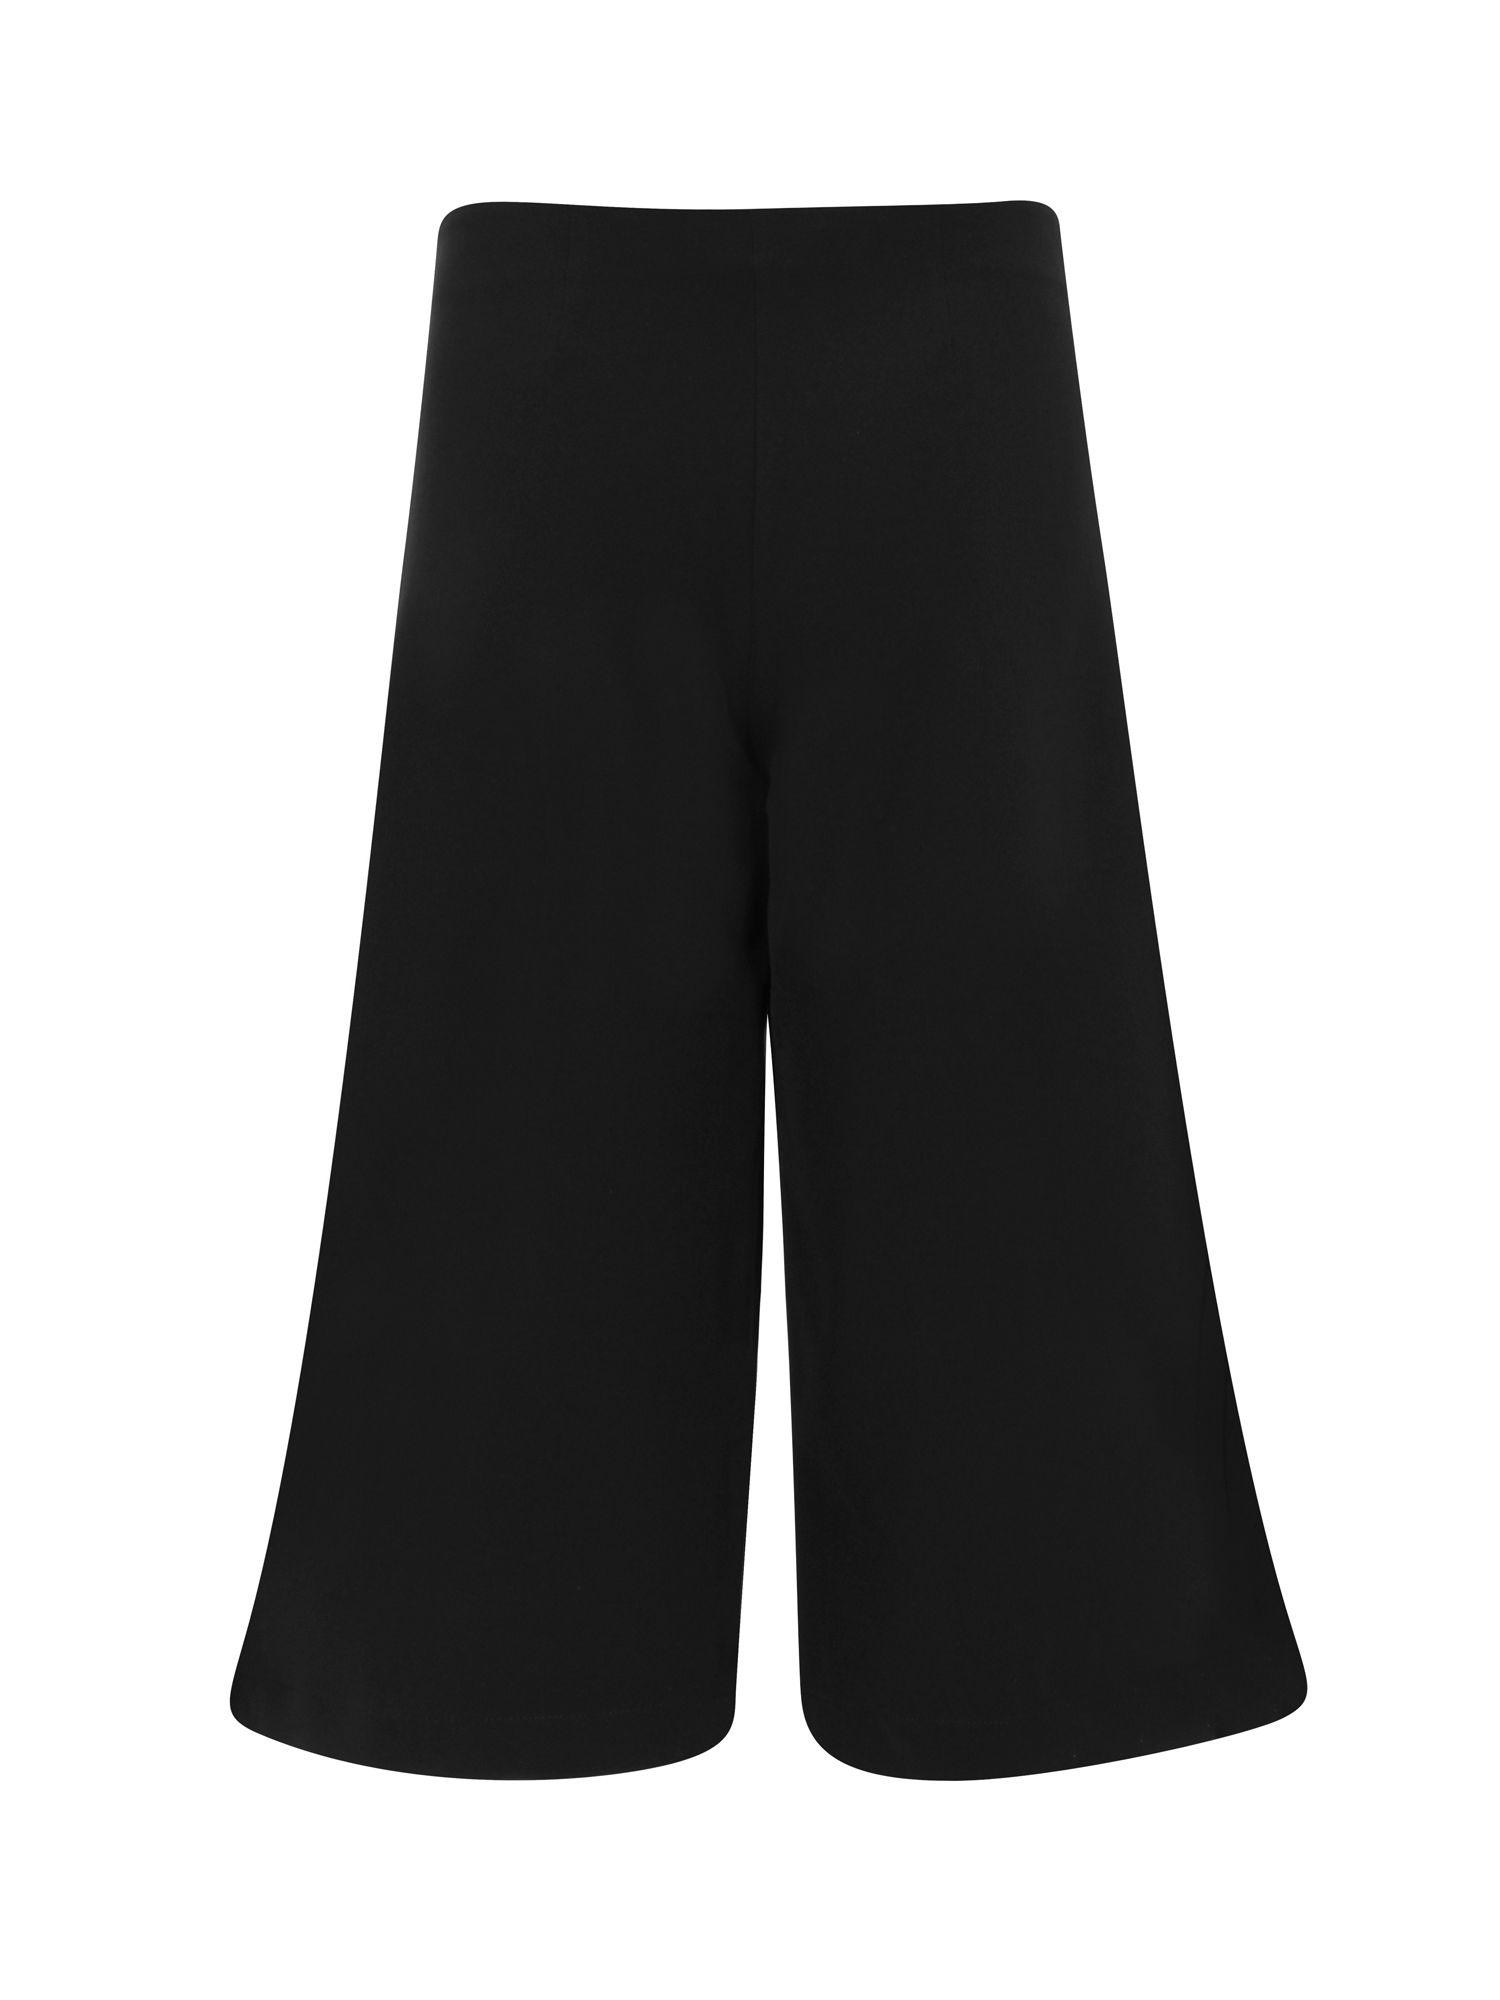 HotSquash Easycare Culottes in Clever Fabric, Black